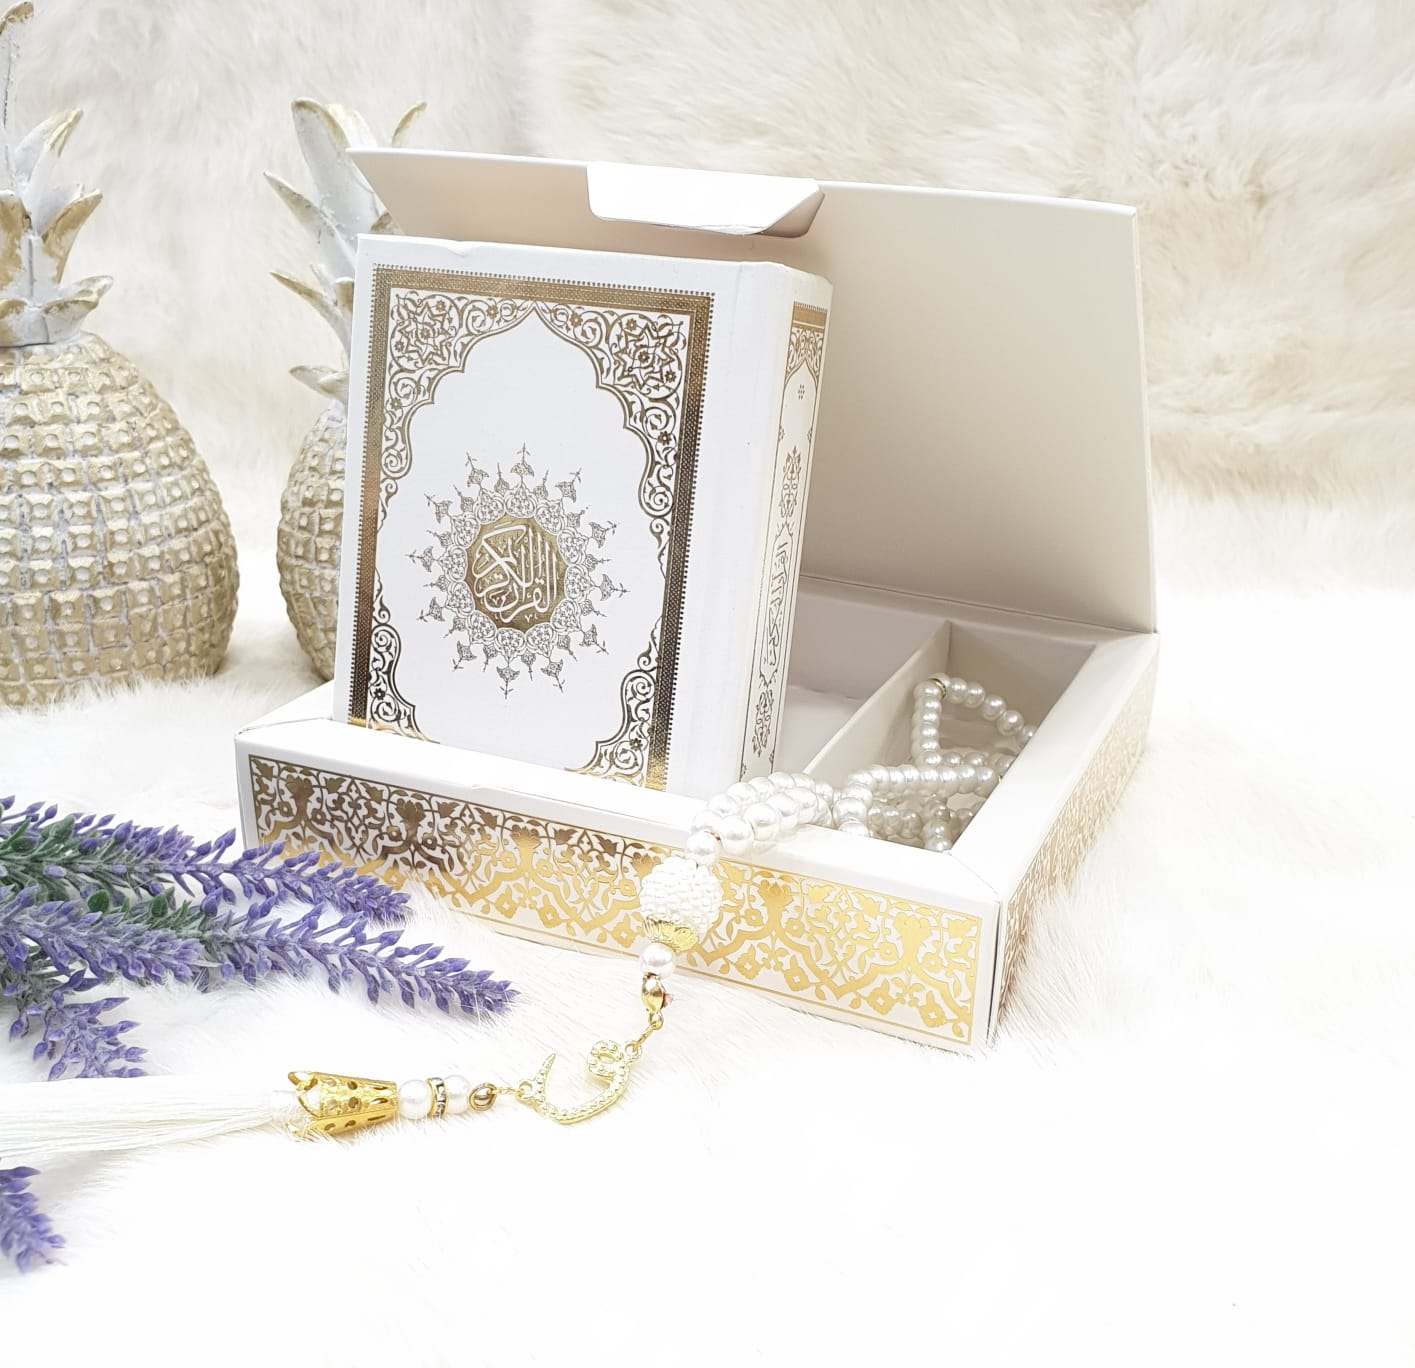 Quran And Rosary Set With Gift Box the First Class High Quality Prayer, Quran Tasbeeh Seven Color